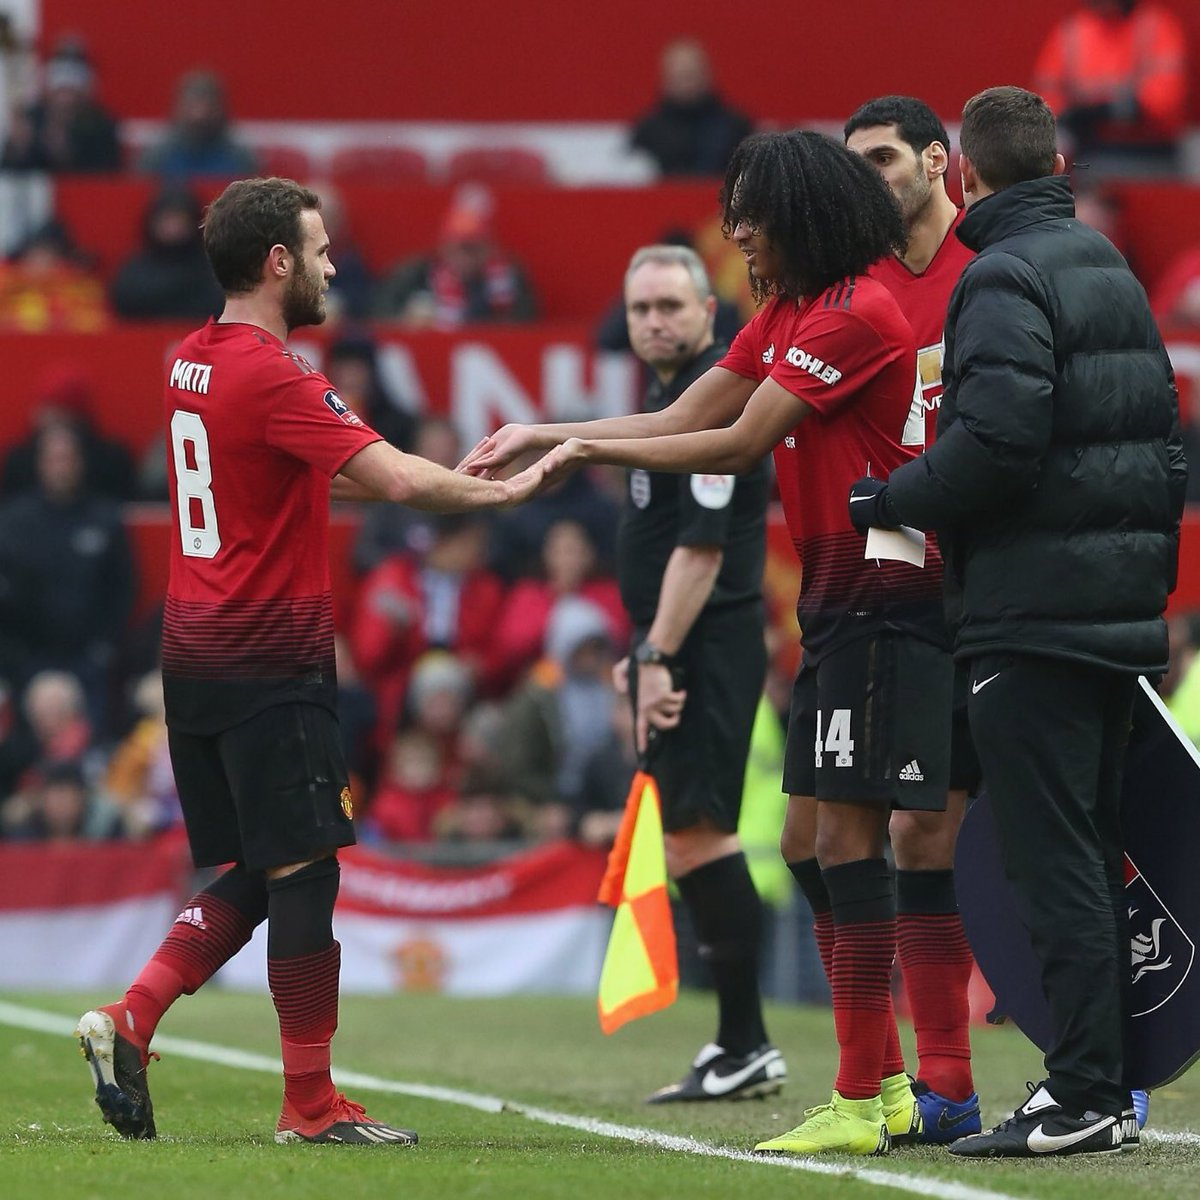 Proud moment making my @ManUtd debut at Old Trafford. Dream come true! Thanks to my family, teammates, coaches and the fans for the support. It means a lot! 🙏🏾❤️